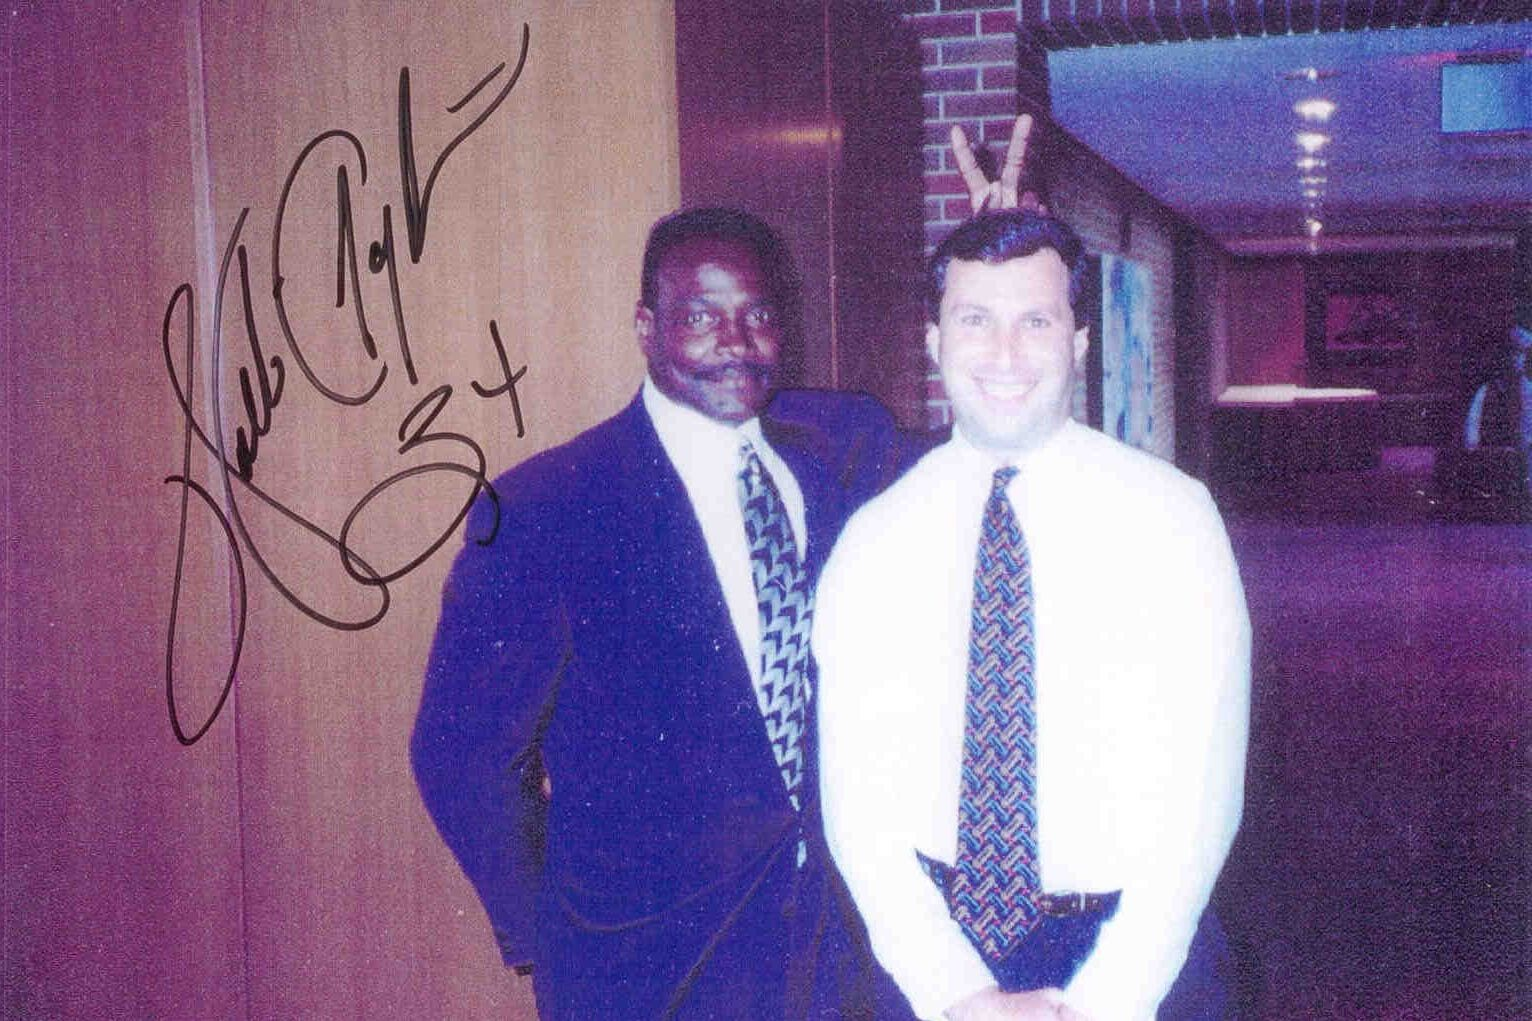 An autographed photo of Walter Payton